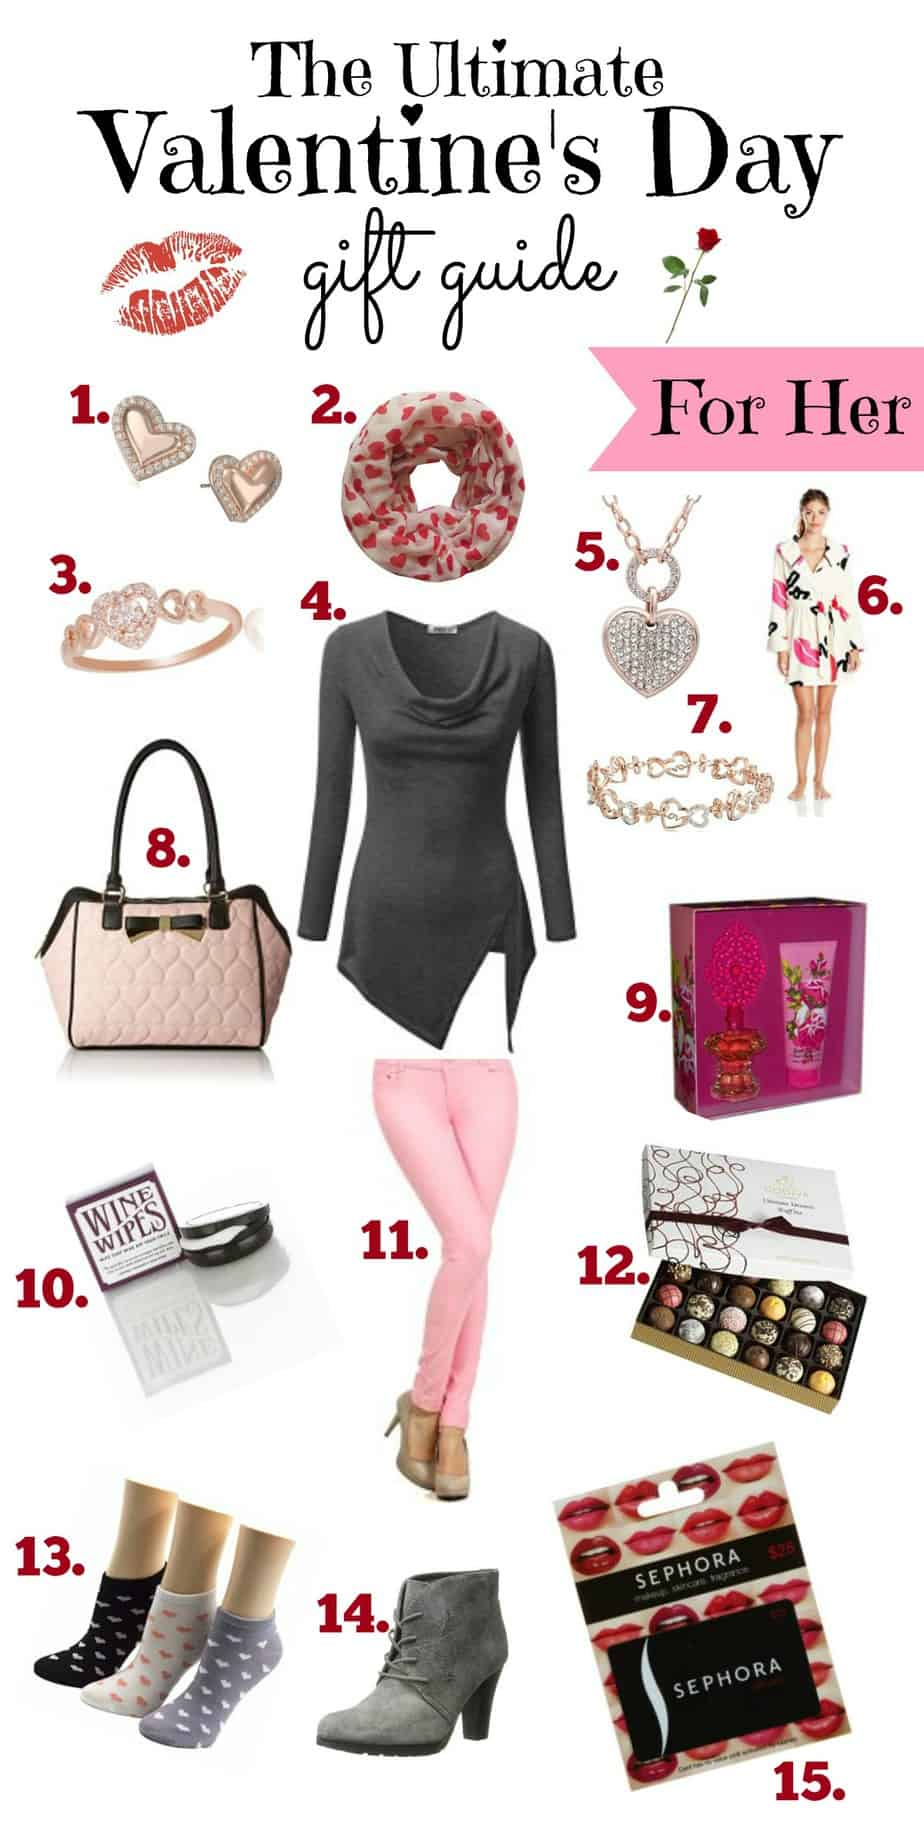 Valentines gifts her great valentines gifts for her ideas for Great valentines ideas for her